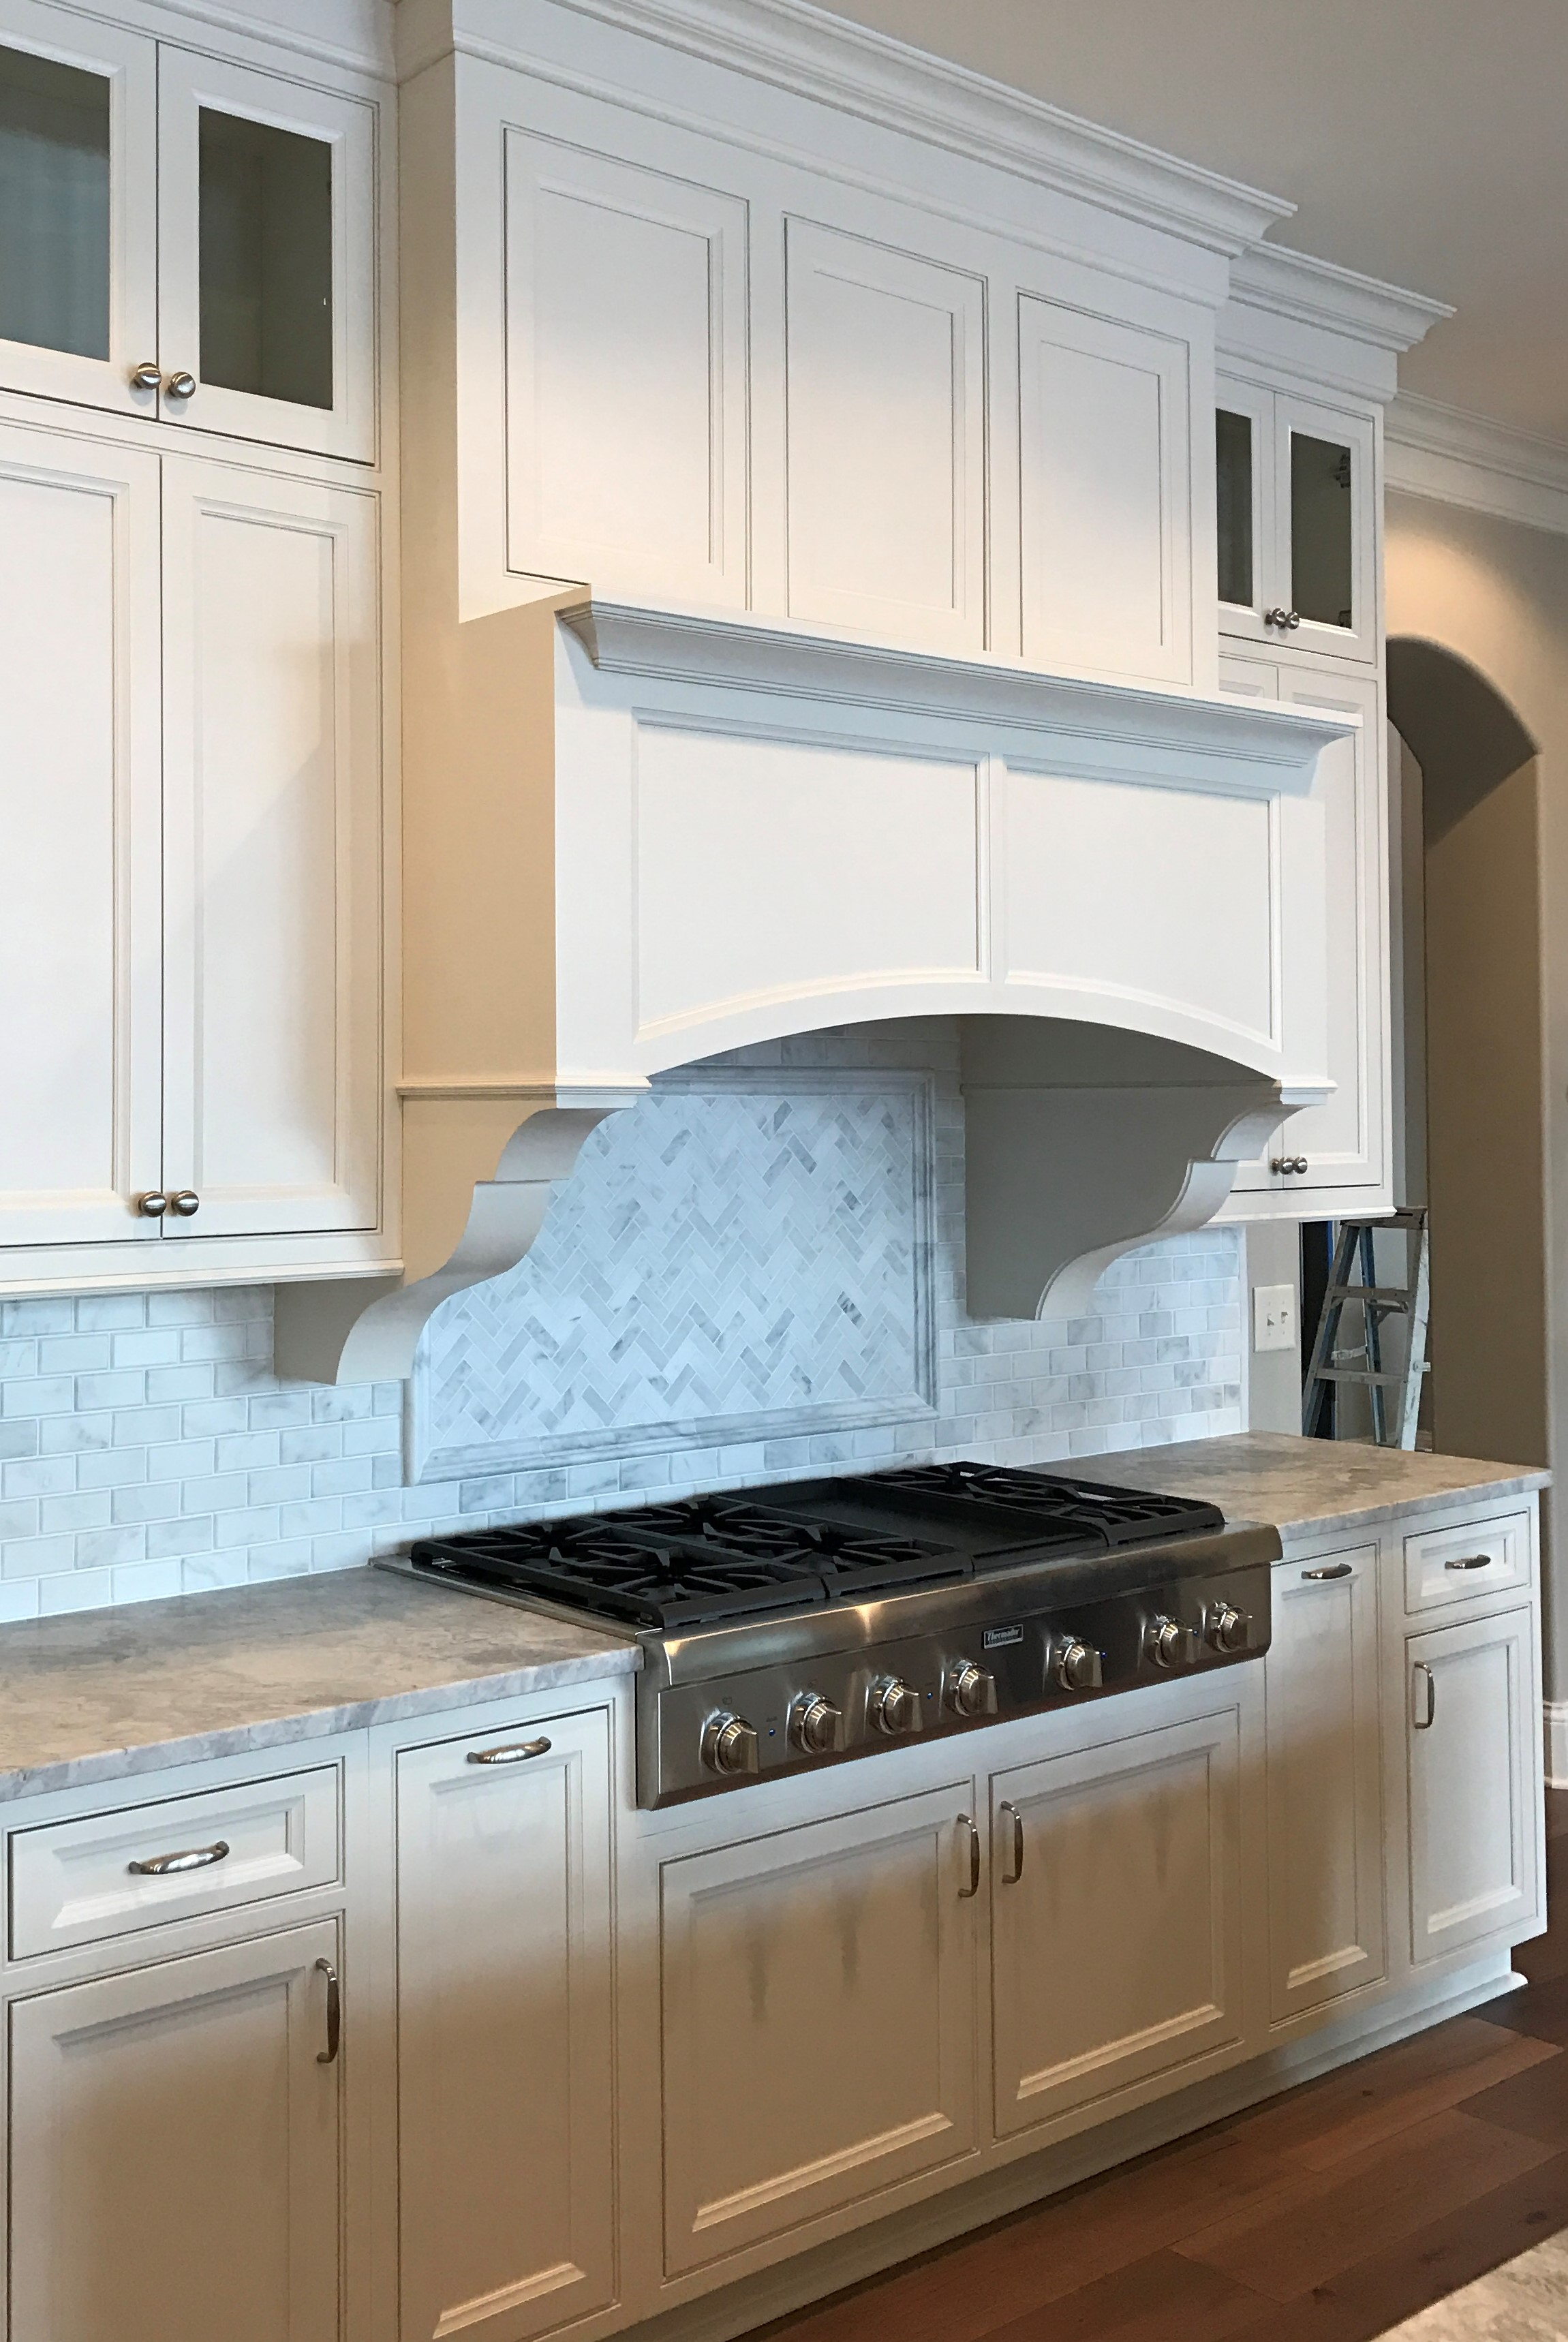 A Look At Universal Design In The Kitchen Cabinet Countertop Inspirations